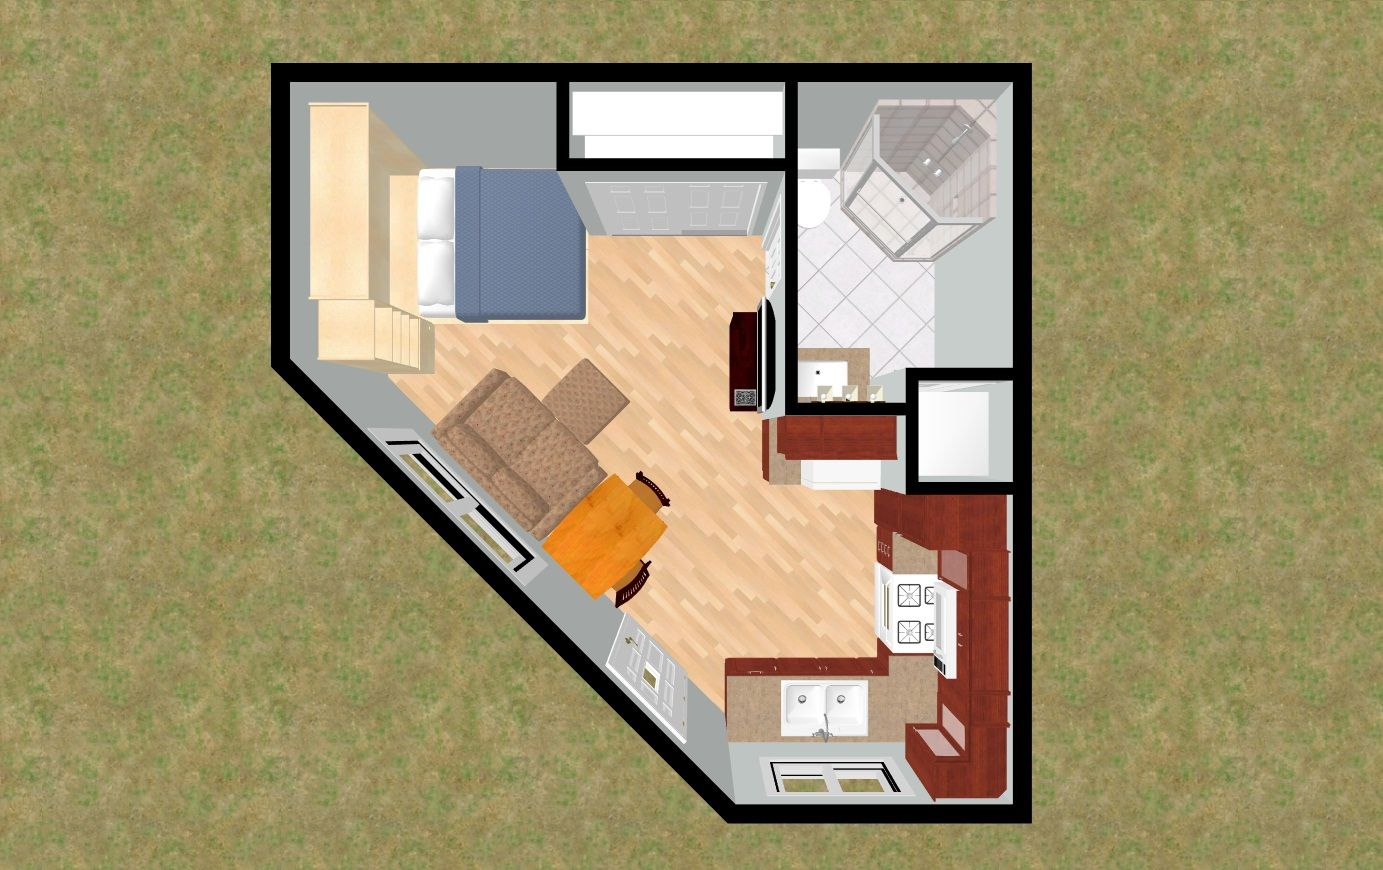 Small House Plans 750 Sq Ft Small Home Plans Under 200 Sq Ft 1 300 Small House Floor Plans Pool House Plans Home Design Floor Plans